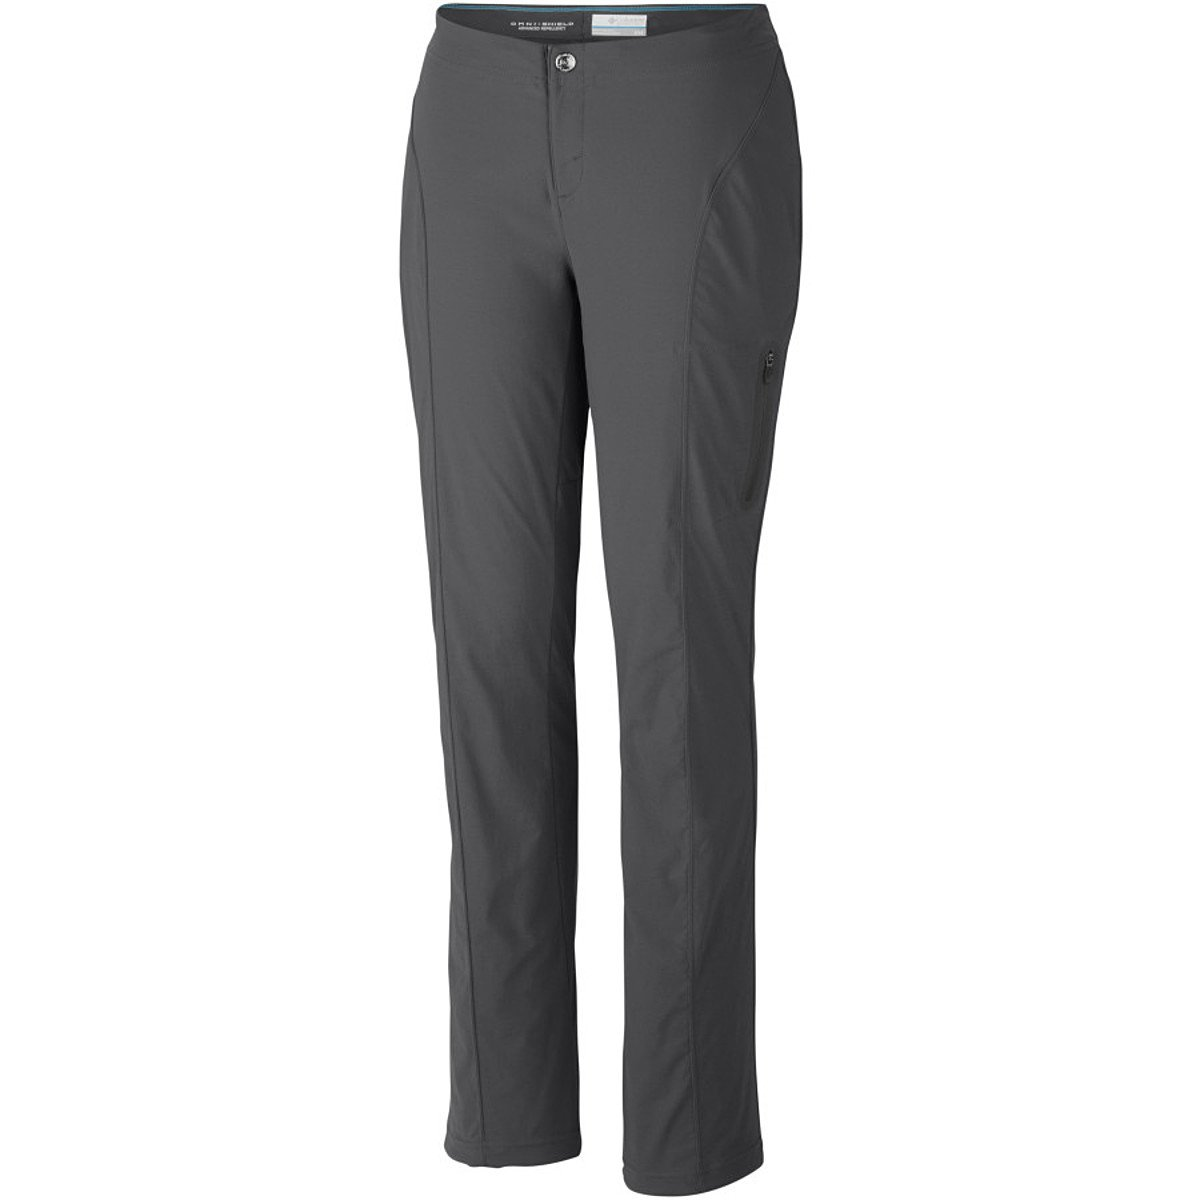 Columbia Women's Just Right Straight Leg Pant, Grill, 6R